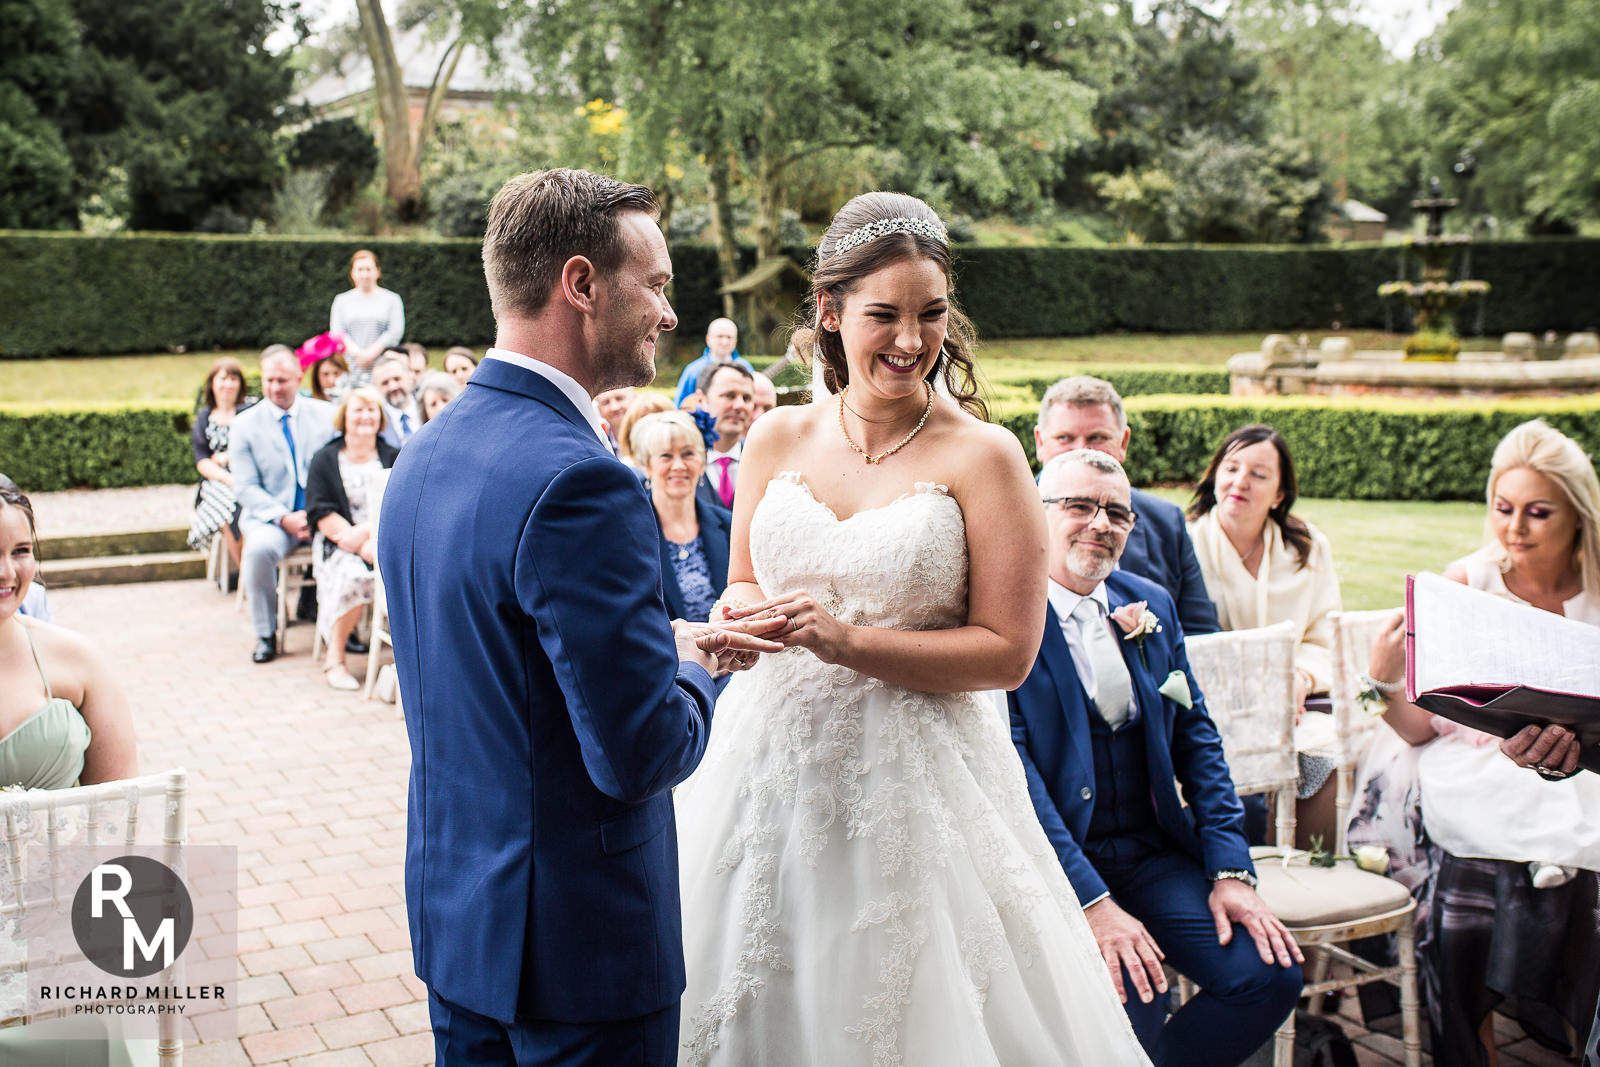 P R 17 - Pete & Roxy's Soughton Hall Outdoor Wedding